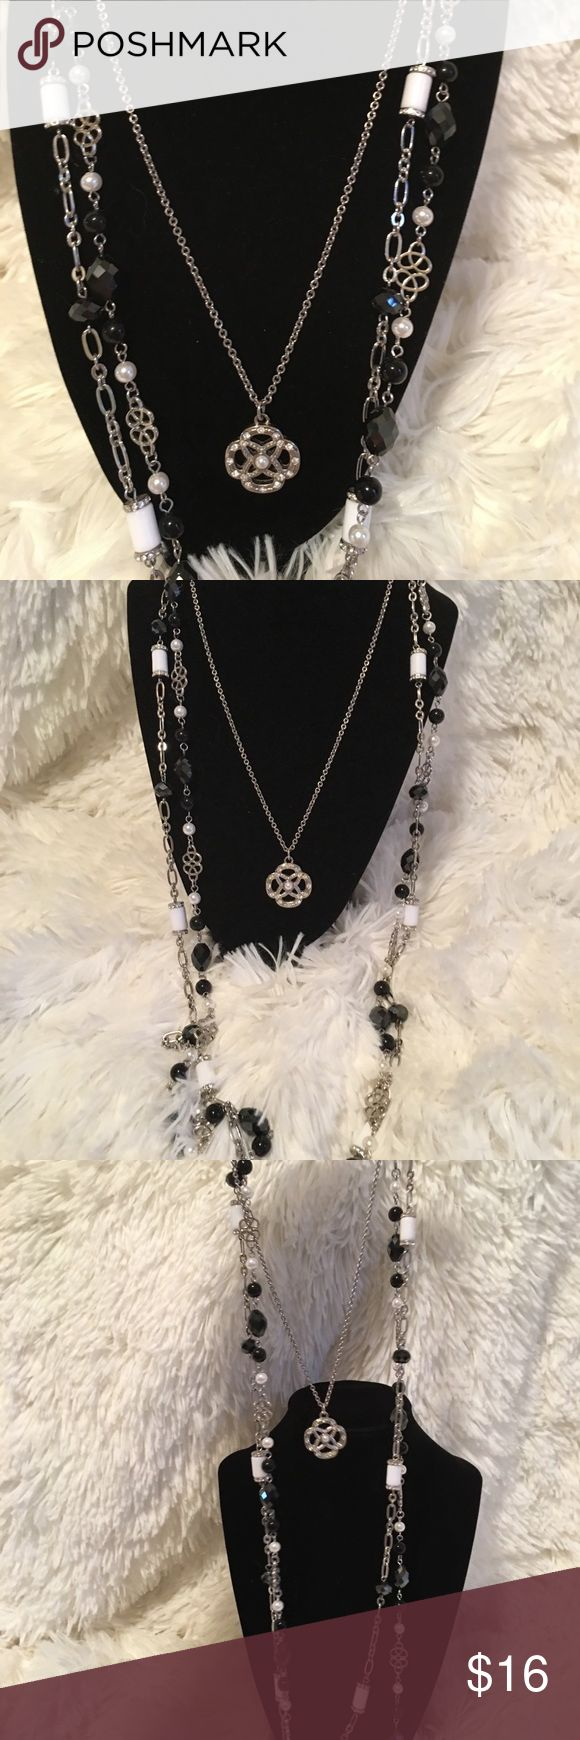 "Lia Sophia 62"" Necklace set Beautiful black and white Lia Sophia 3 piece set can be used as one, two or three piece necklaces. Lia Sophia Jewelry Necklaces"